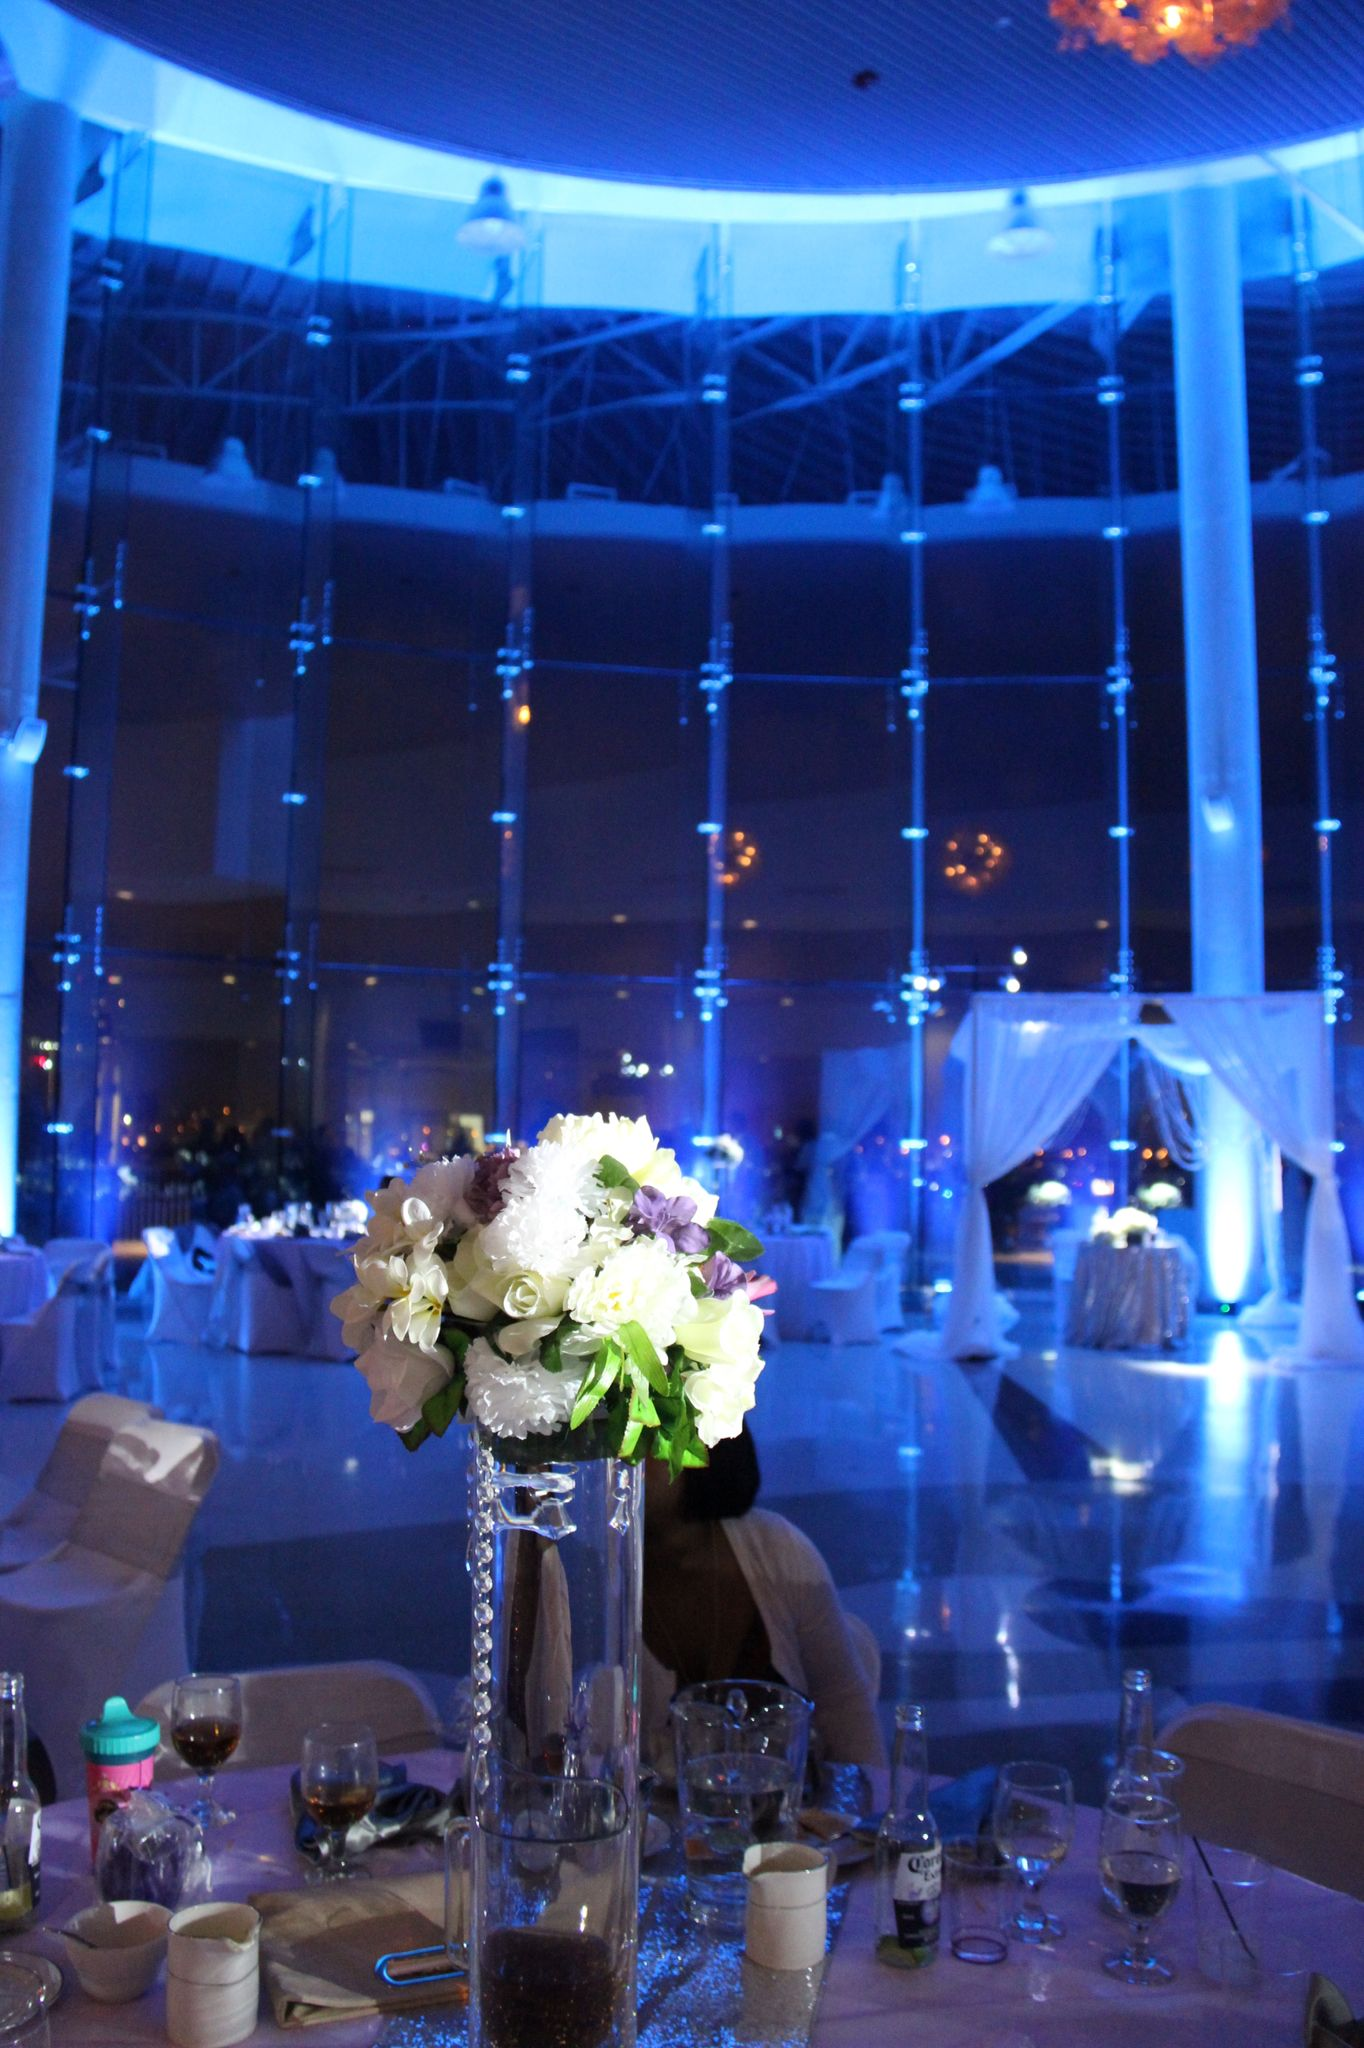 Wedding up lighting and pin spots done by illuminations innovations